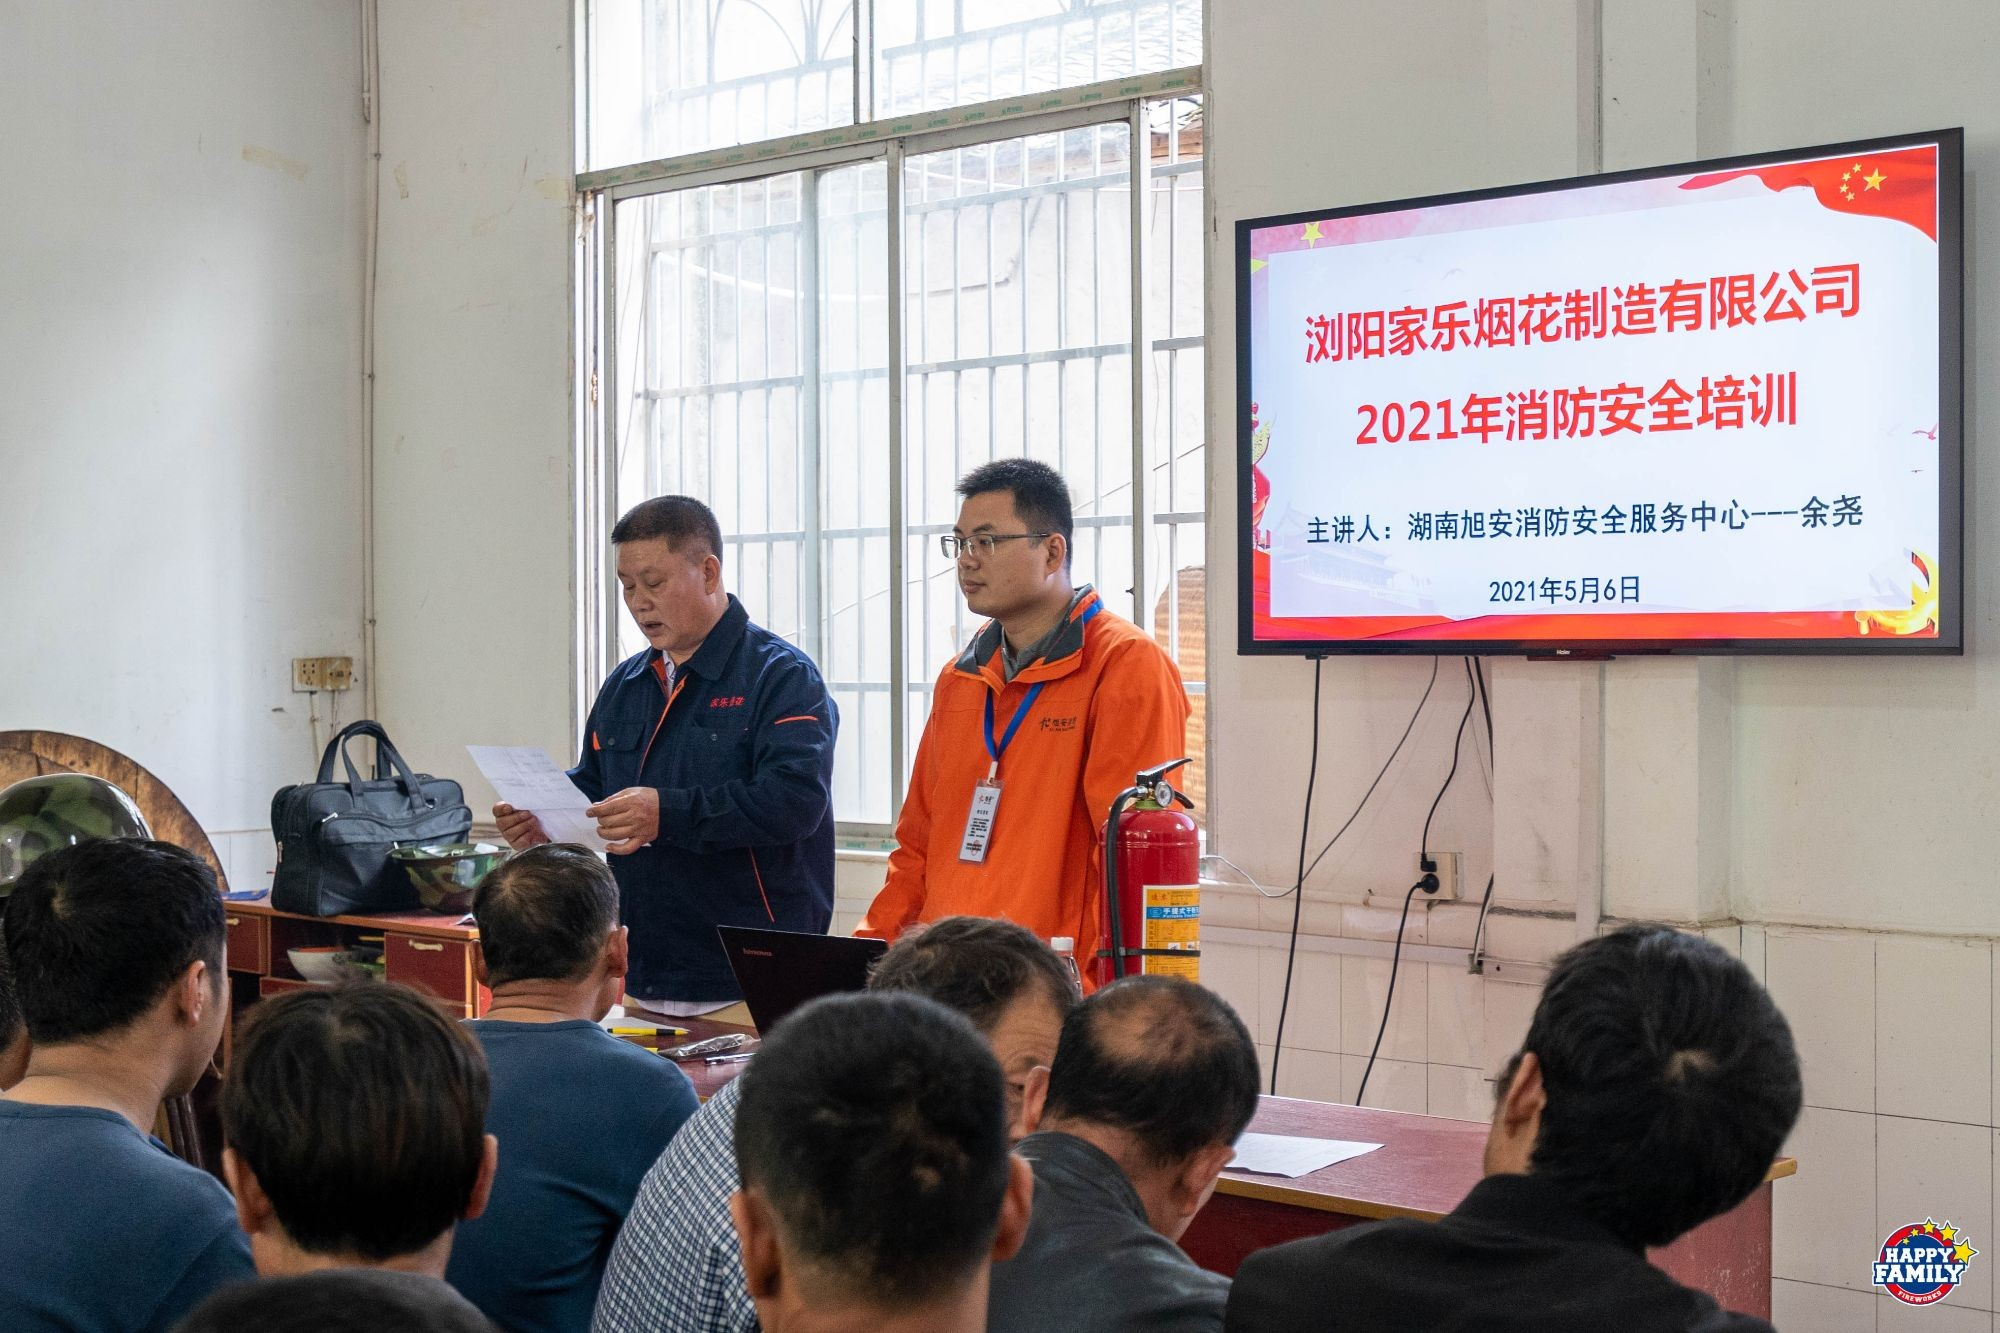 Happy Family Fireworks Factory to carry out Fire safety training records on May 6th,2021